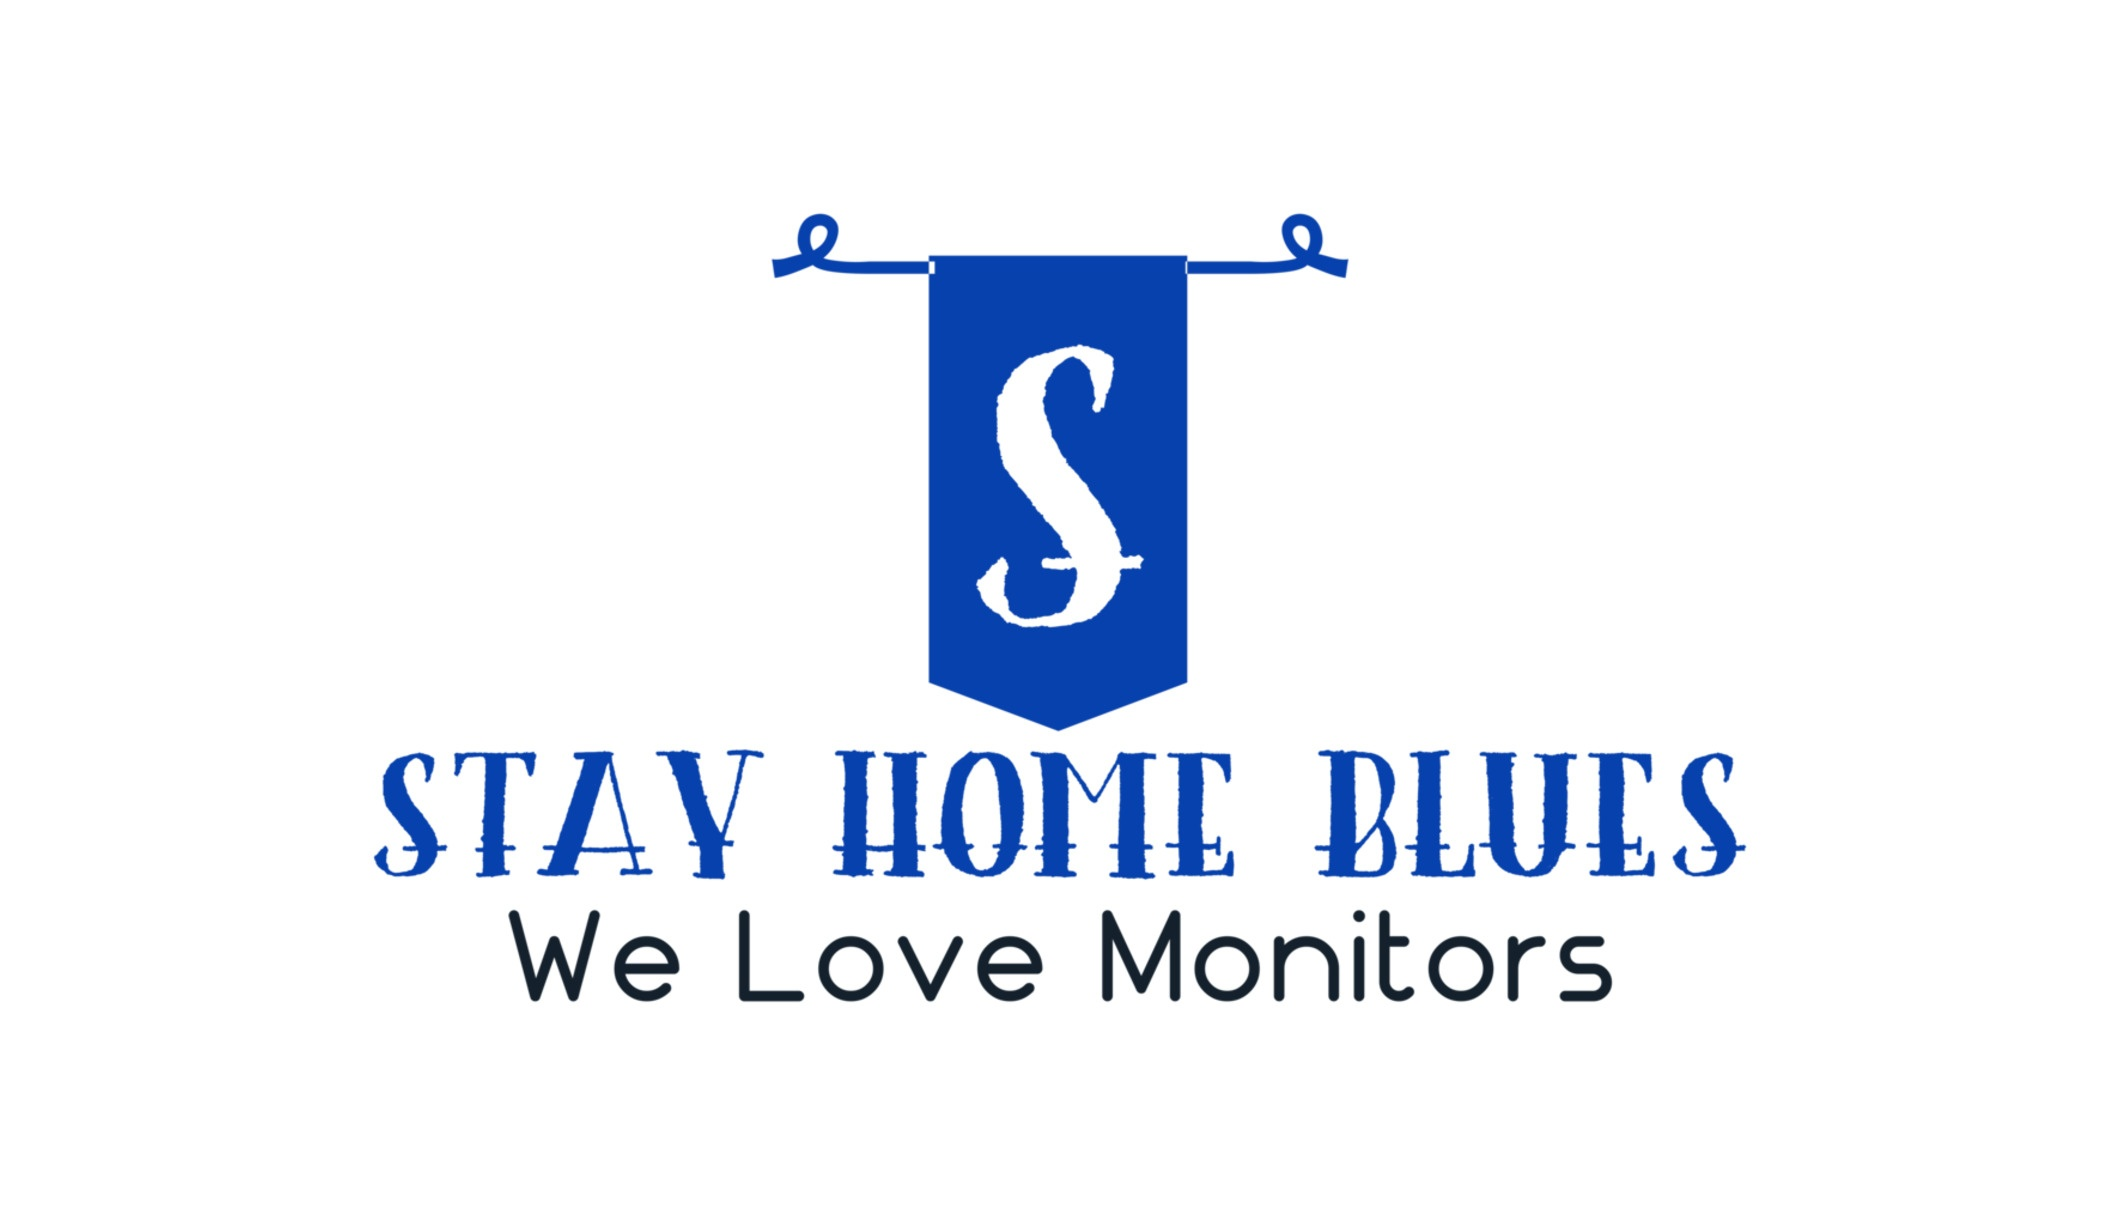 Stay home blues